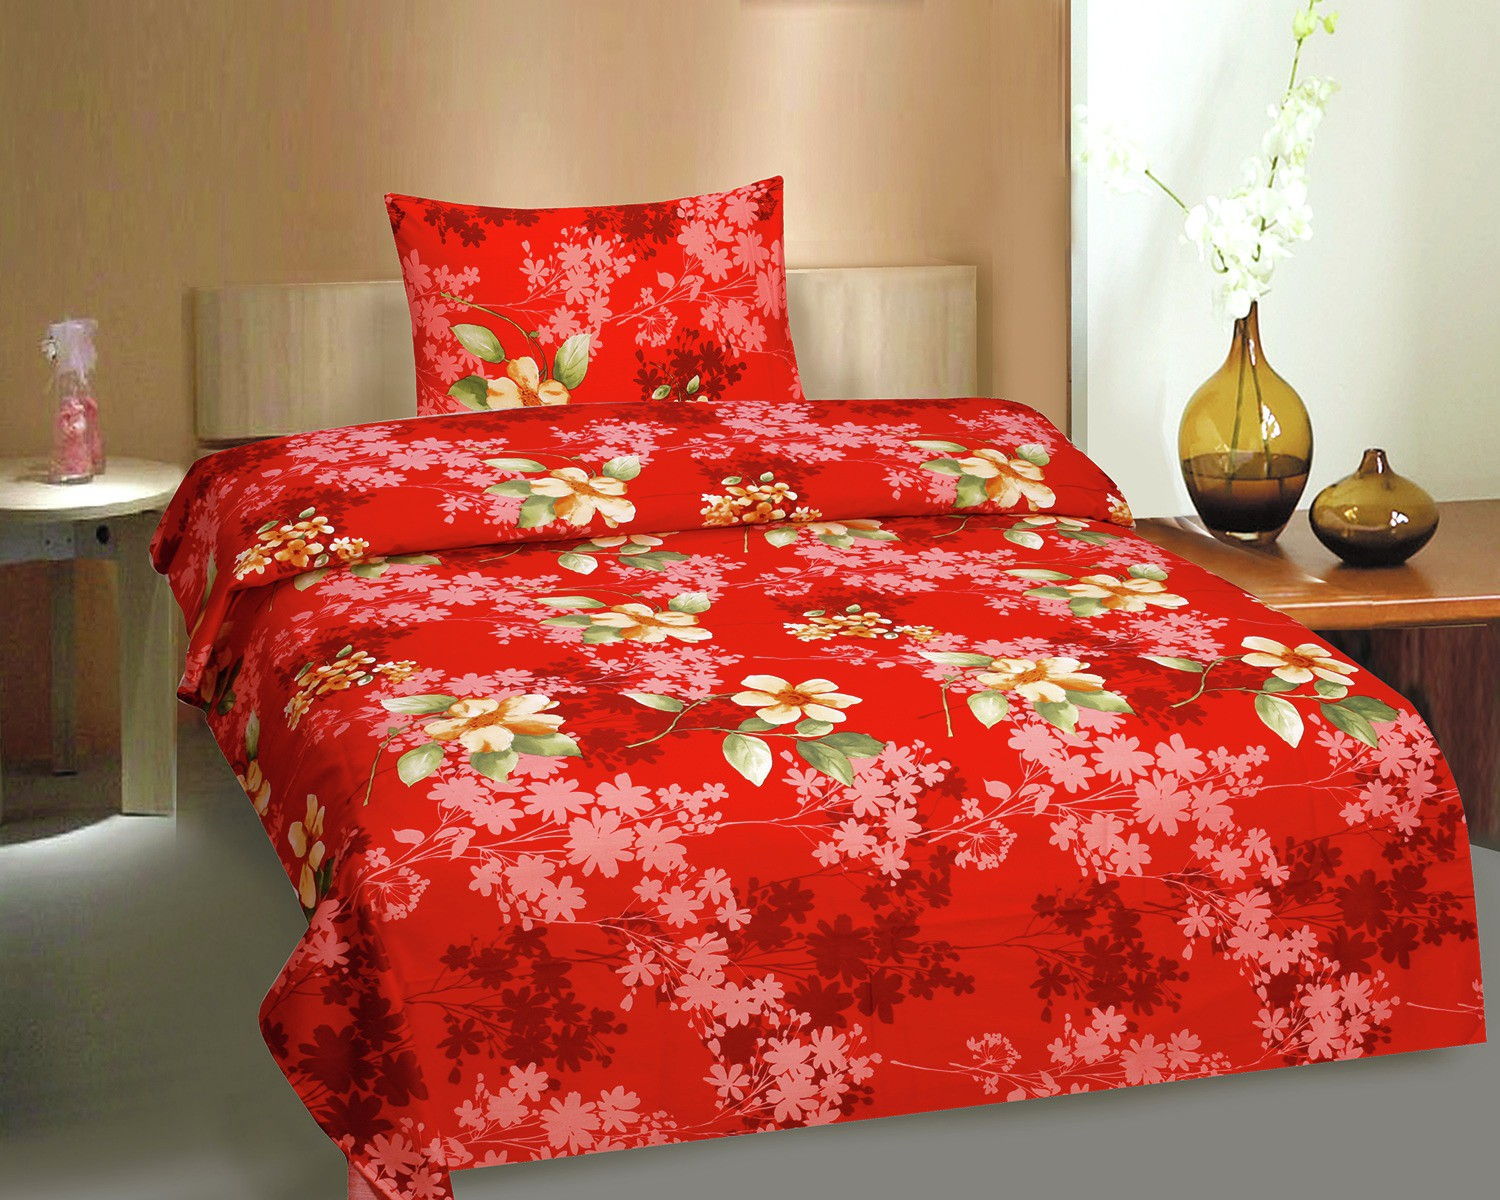 Flipkart - Single Bedsheets At Just Rs.249